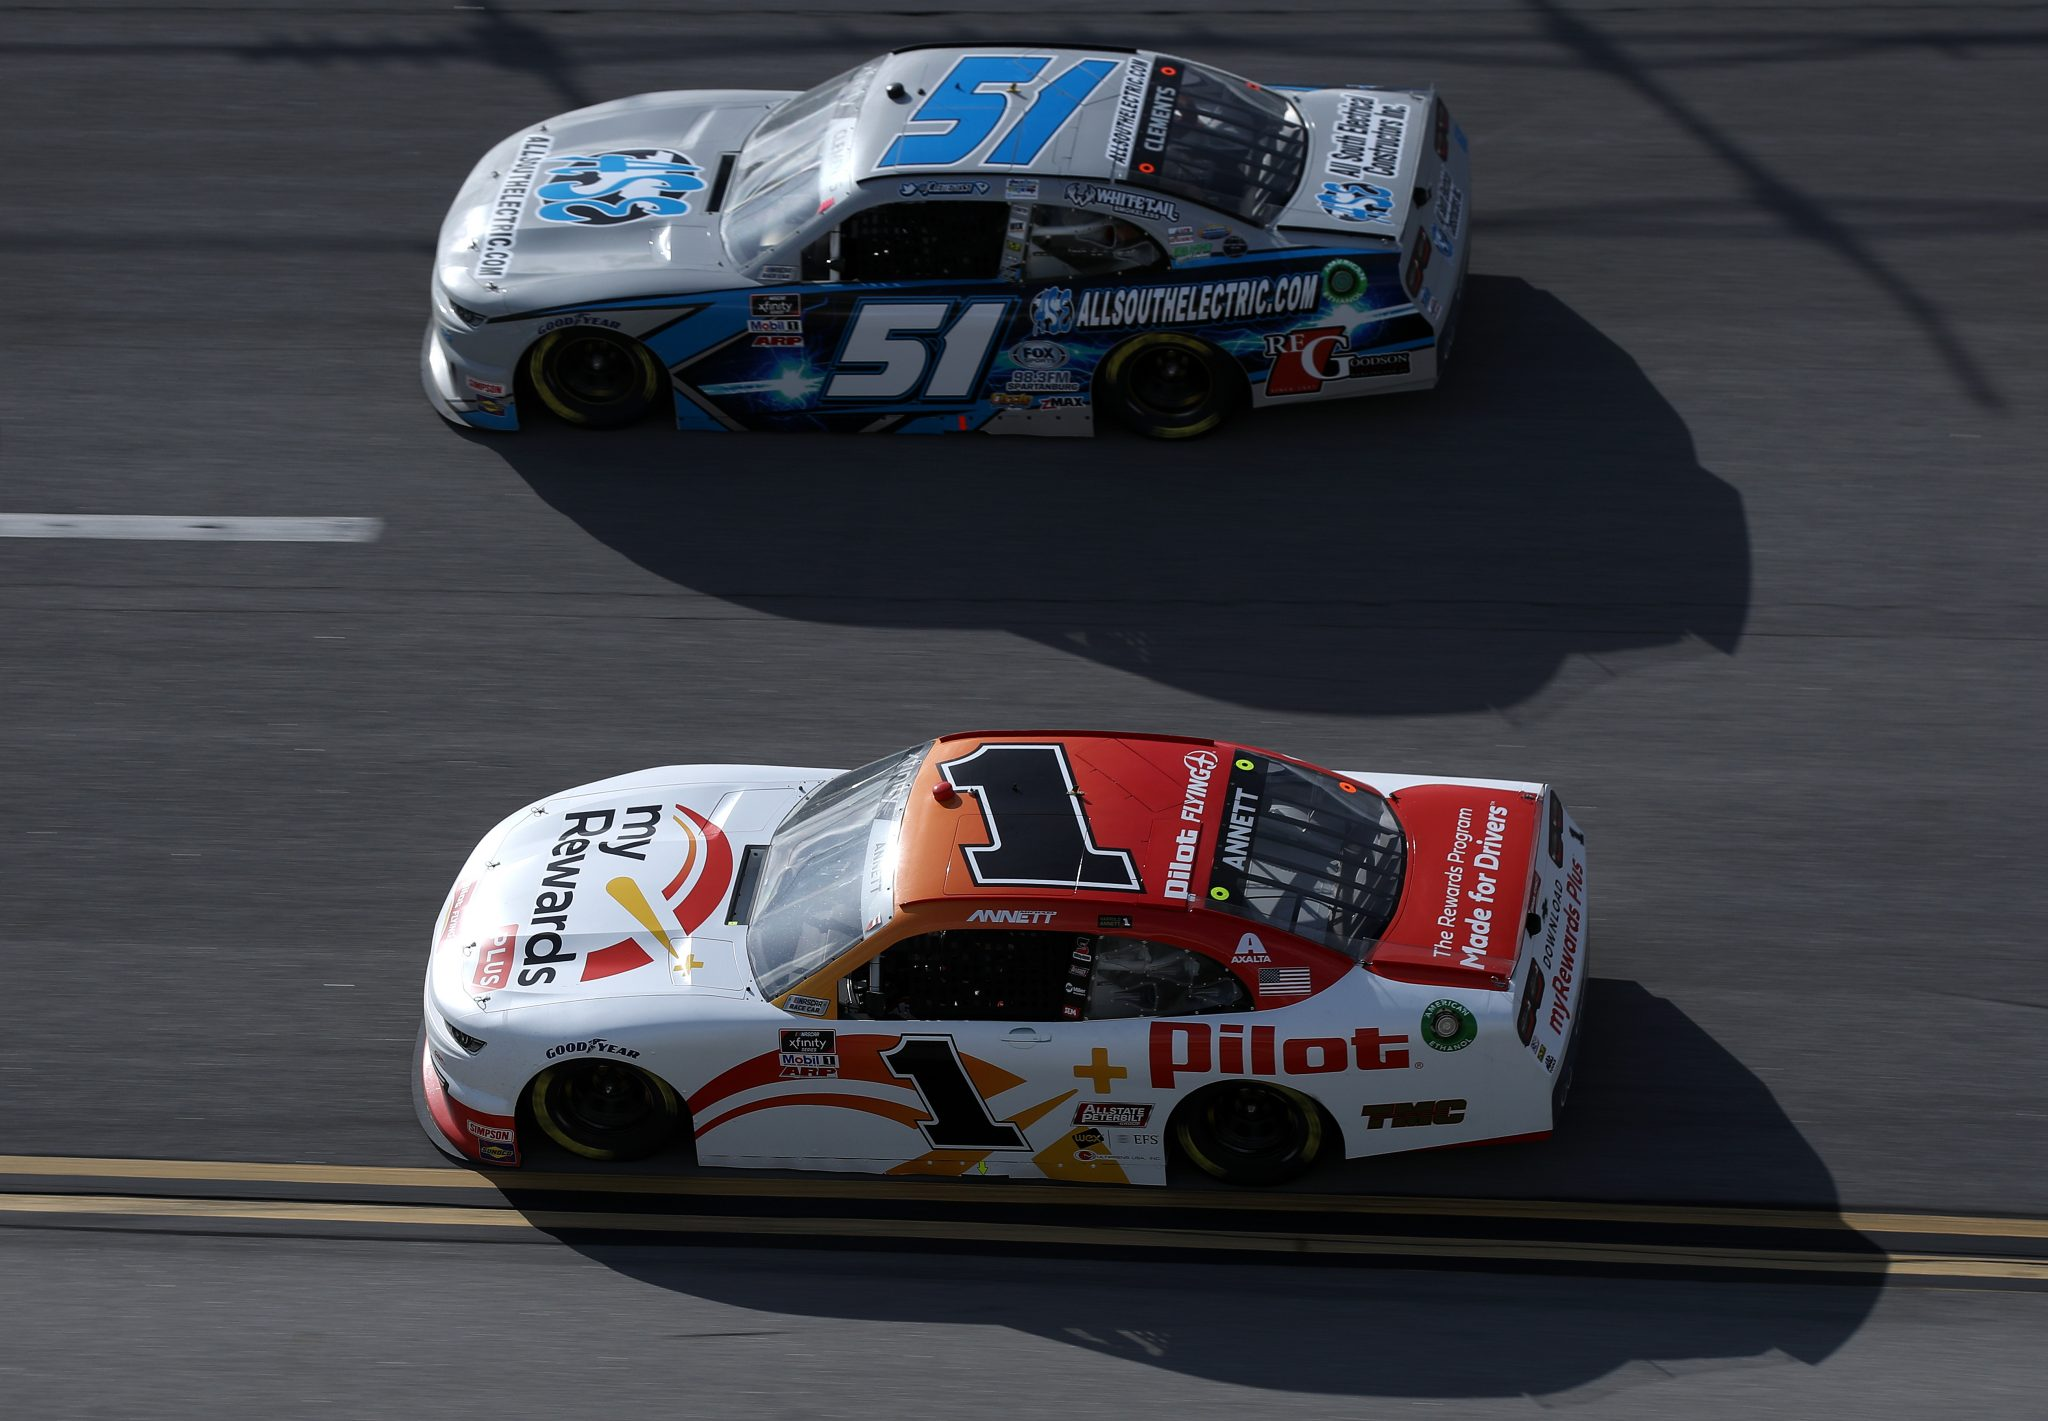 TALLADEGA, ALABAMA - APRIL 24: Michael Annett, driver of the #1 Pilot Flying J myRewards Plus Chevrolet, and Jeremy Clements, driver of the #51 All South Electric Chevrolet, race during the NASCAR Xfinity Series Ag-Pro 300 at Talladega Superspeedway on April 24, 2021 in Talladega, Alabama. (Photo by Sean Gardner/Getty Images)   Getty Images